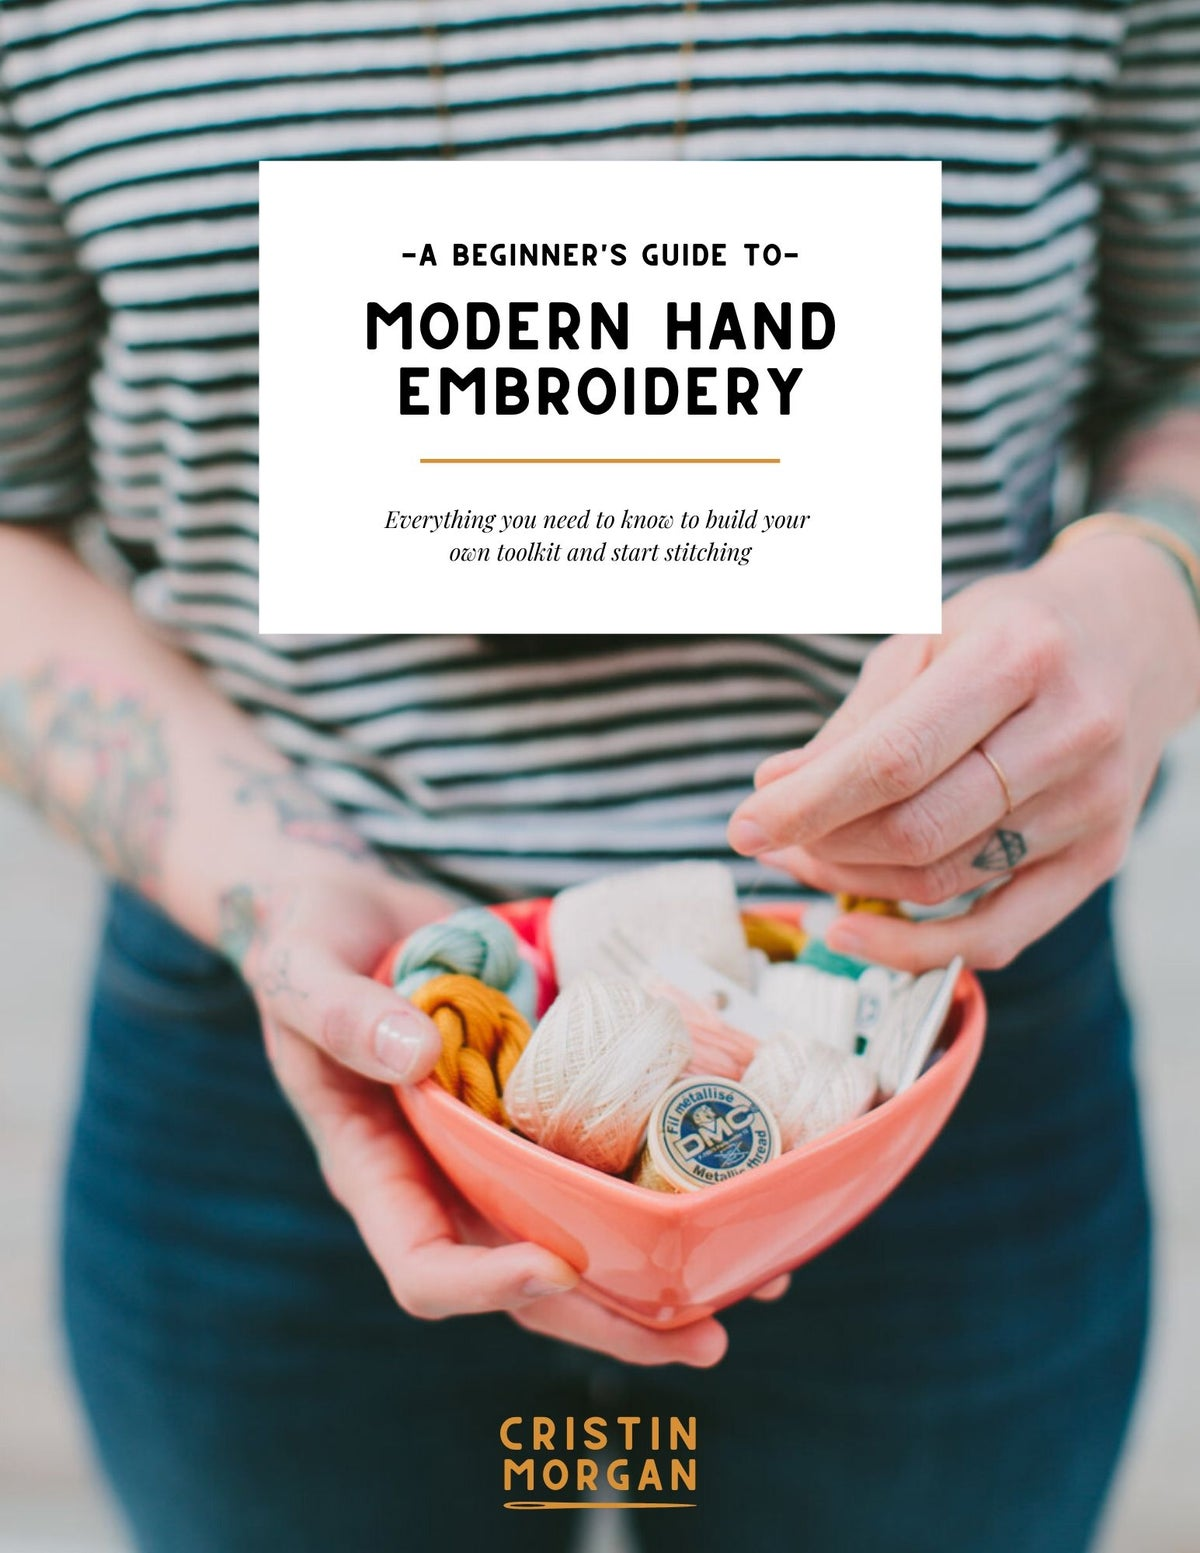 PDF Guide: A Beginner's Guide to Modern Hand Embroidery